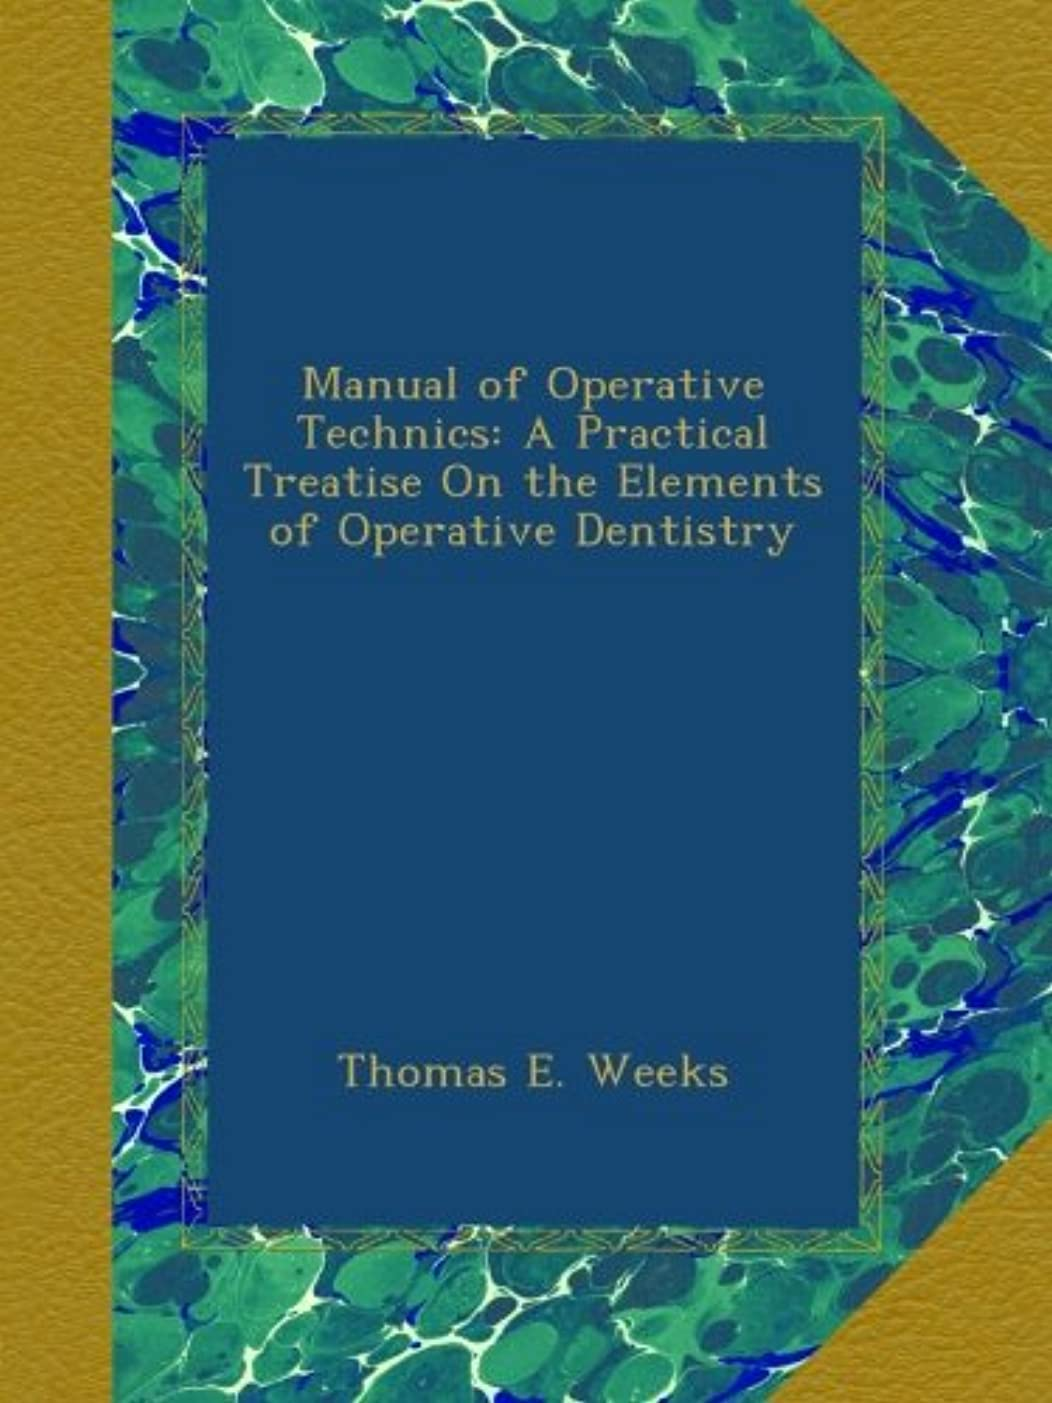 蒸発するまもなくManual of Operative Technics: A Practical Treatise On the Elements of Operative Dentistry